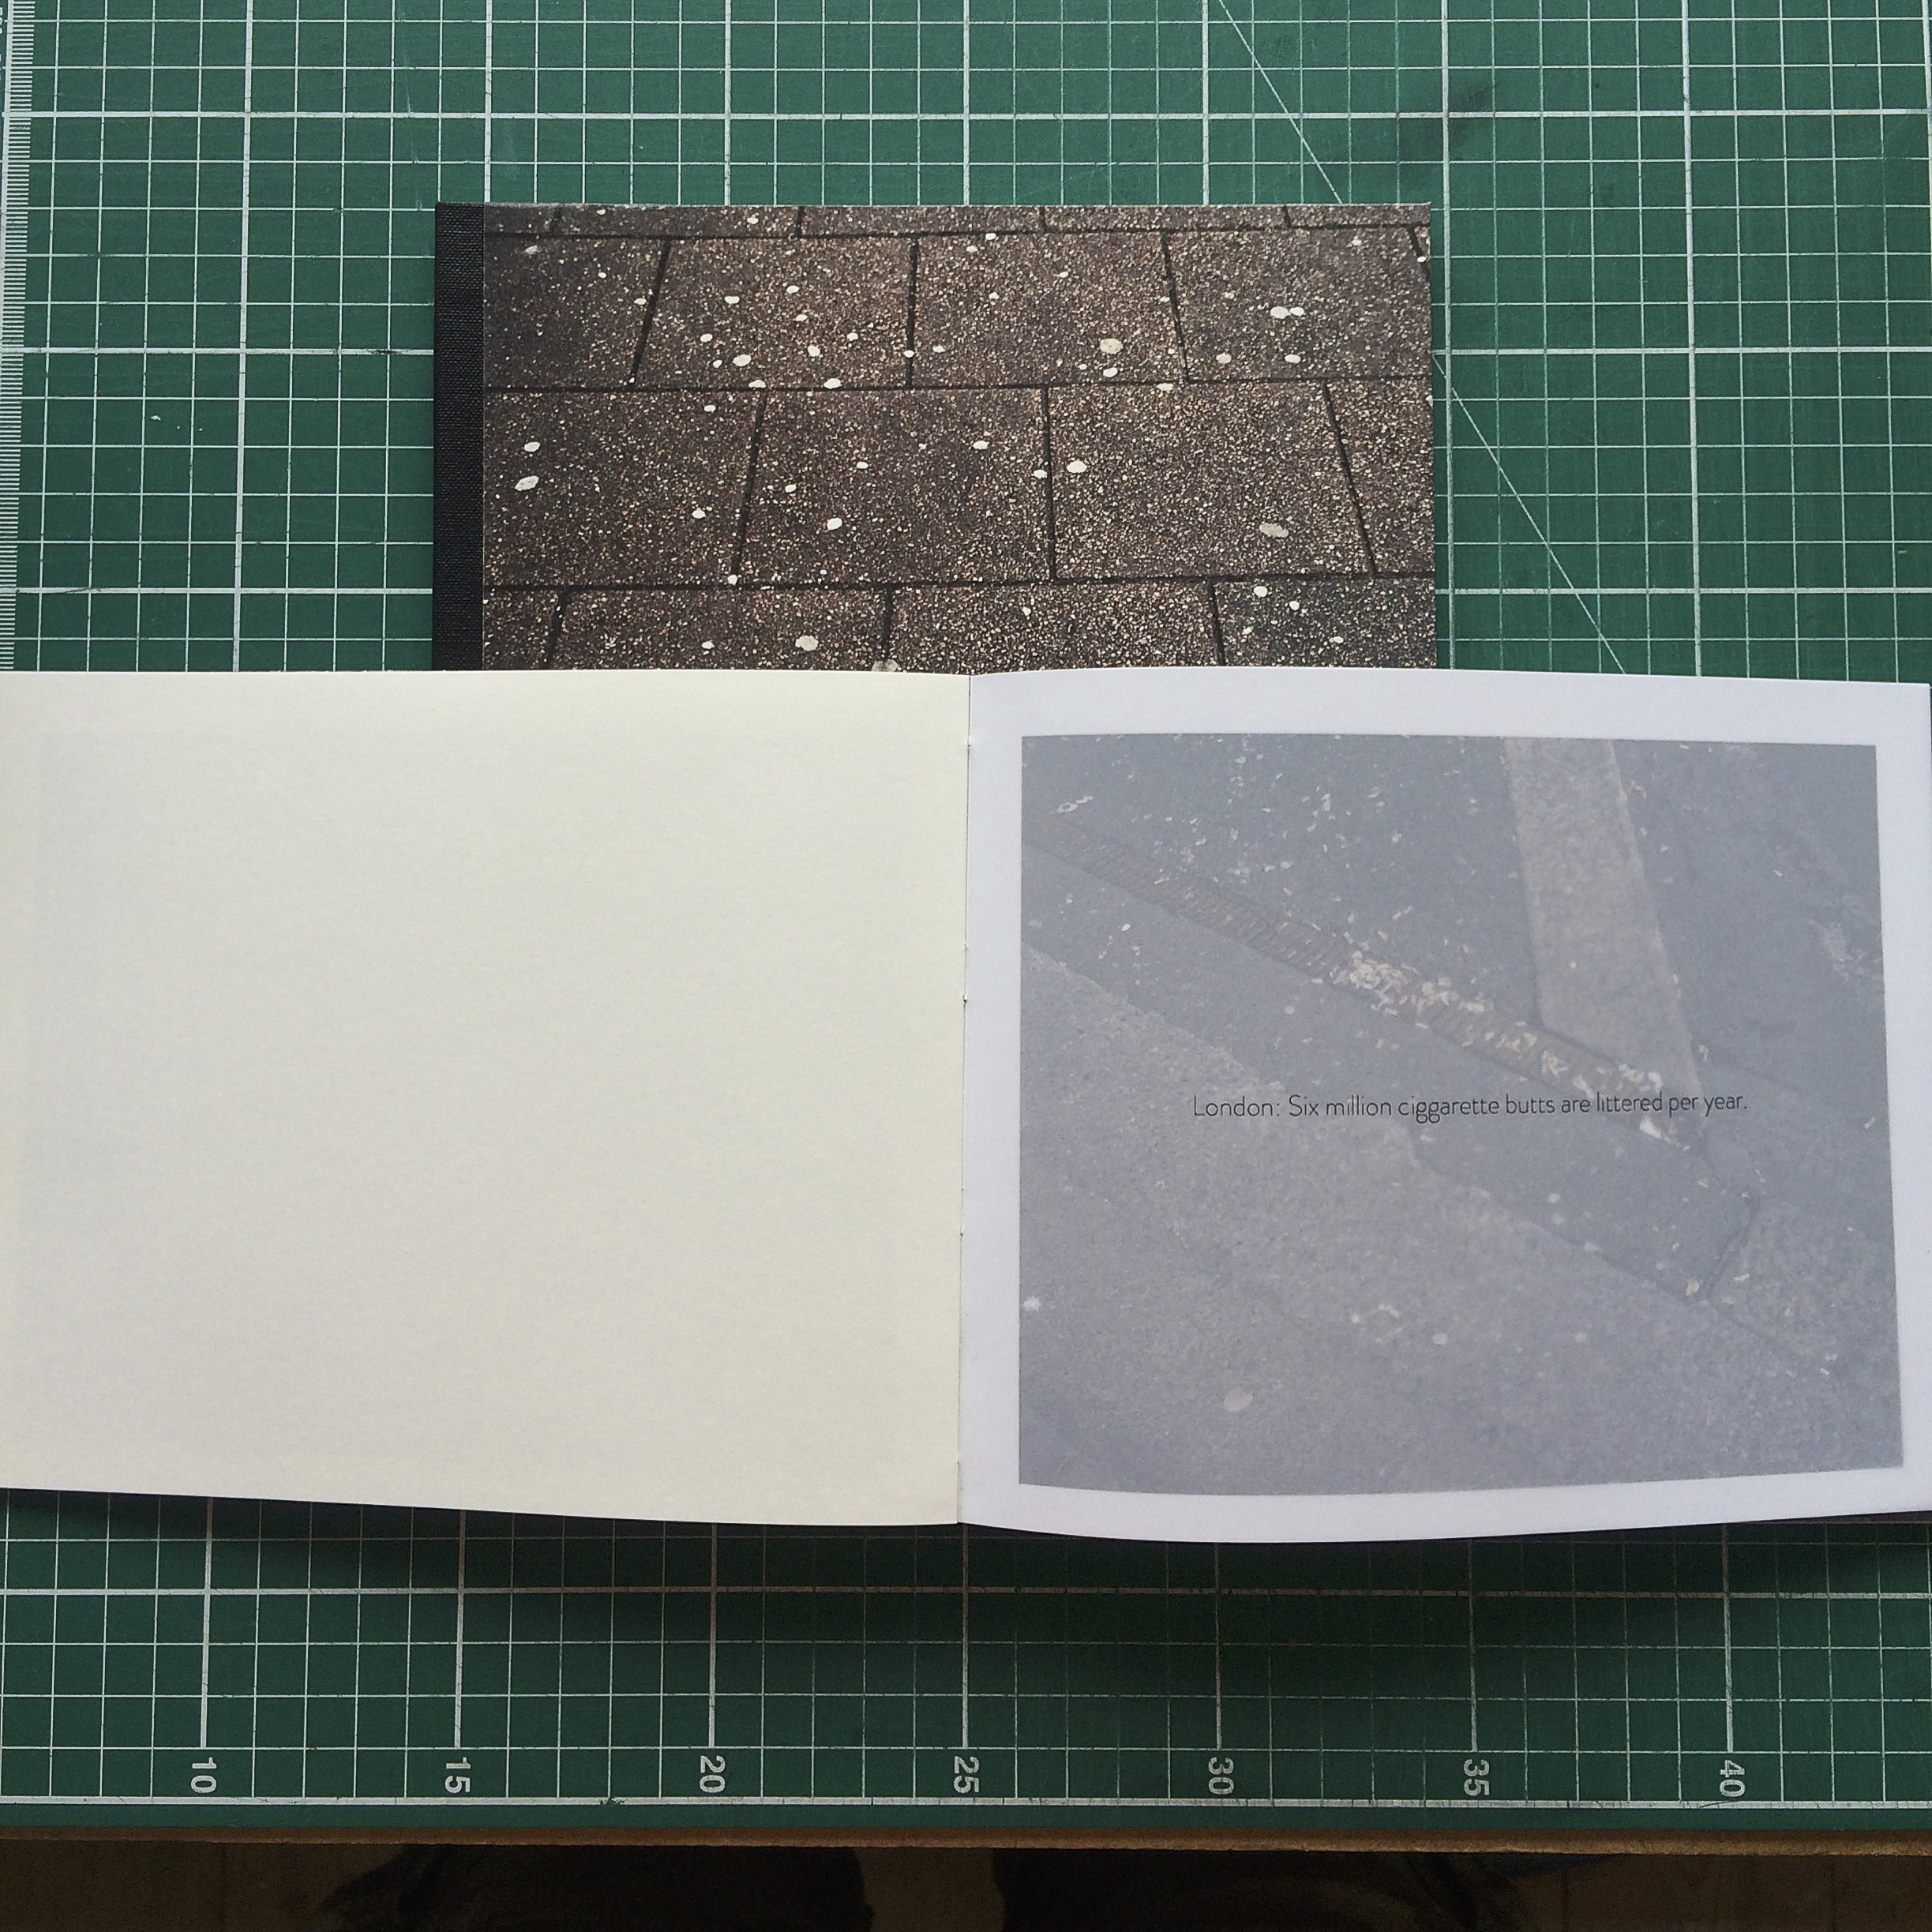 Both books bound and covered, text has been printed on to tracing paper to form a series of overlays throughout the book